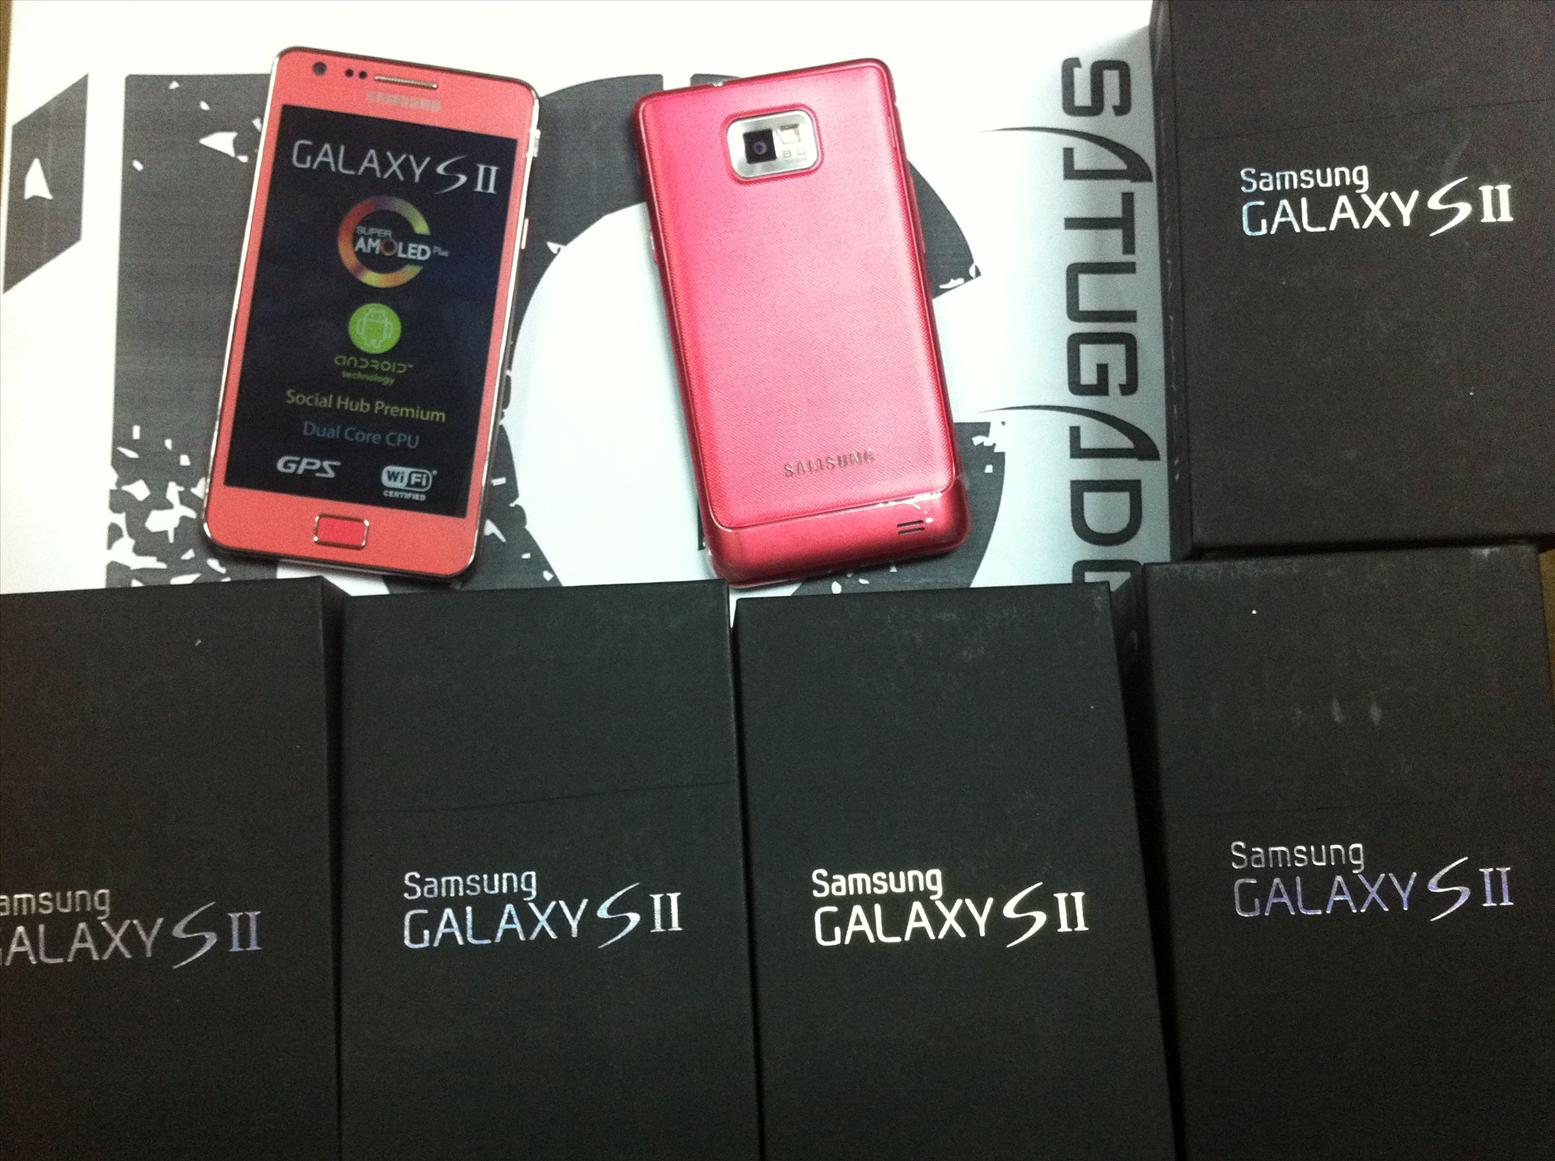 Samsung Galaxy S2 PINK - limited edition, new unit, 24 months warranty